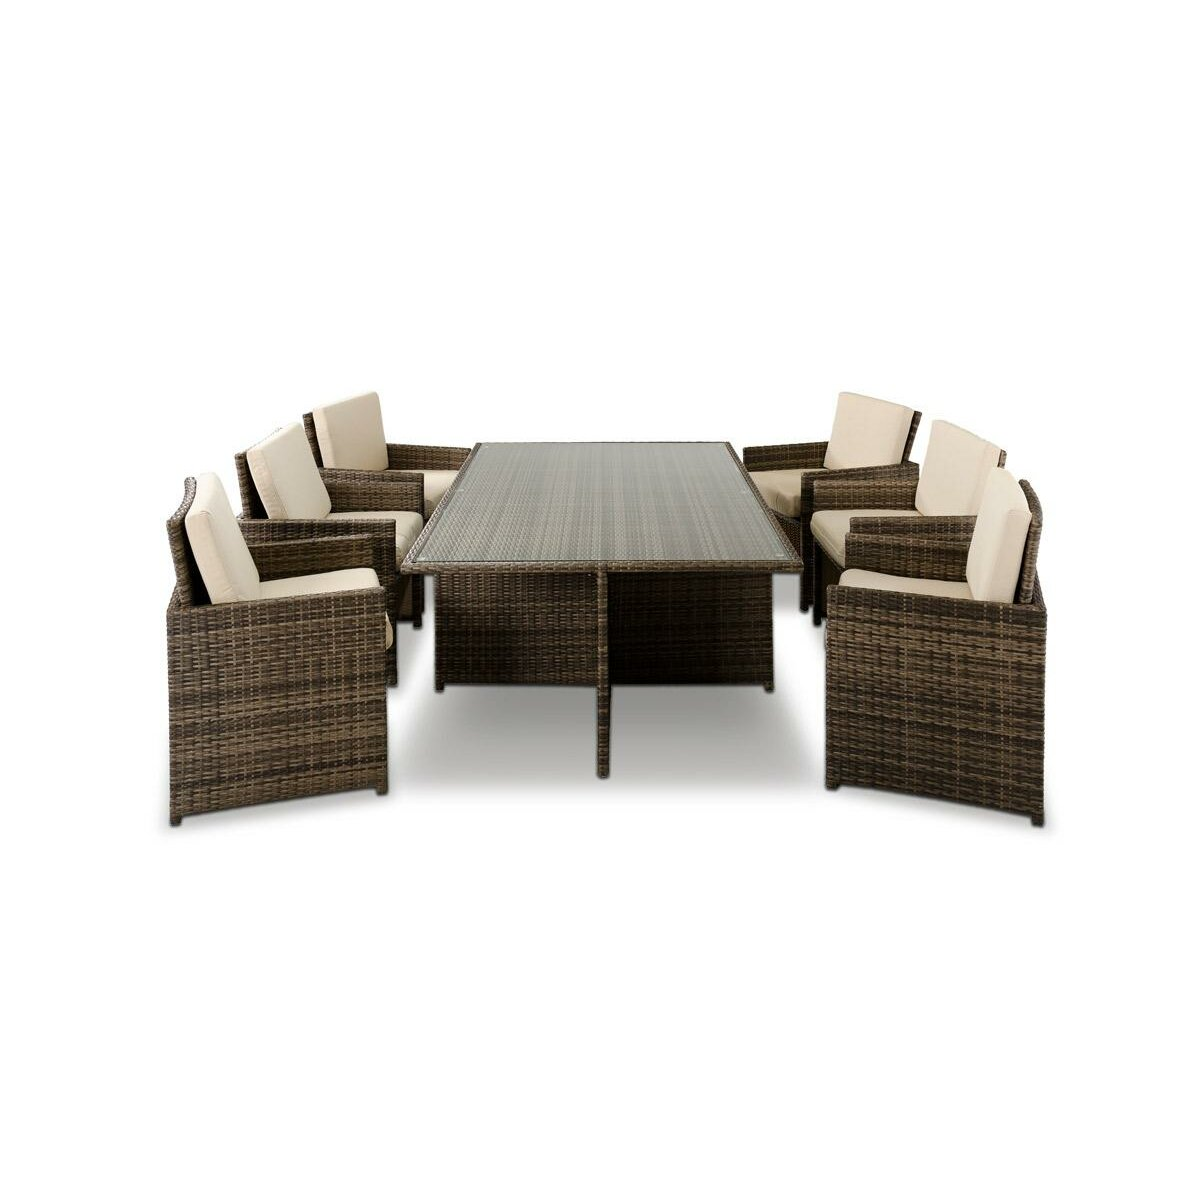 Vig furniture renava barcelona 13 piece dining set for Furniture 2 day shipping